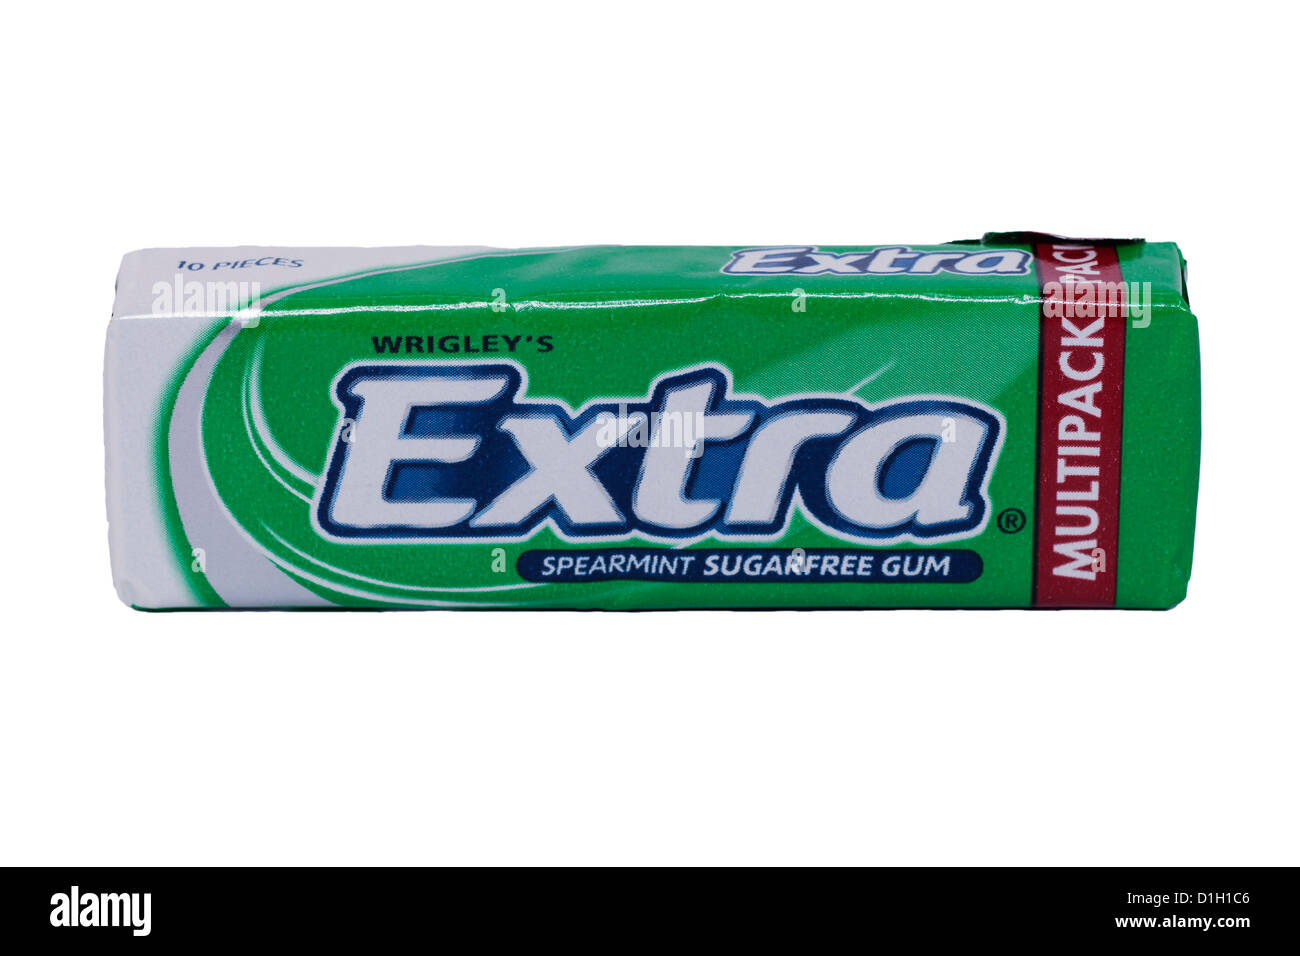 A packet of Wrigley's Extra spearmint sugarfree chewing gum on a white background - Stock Image